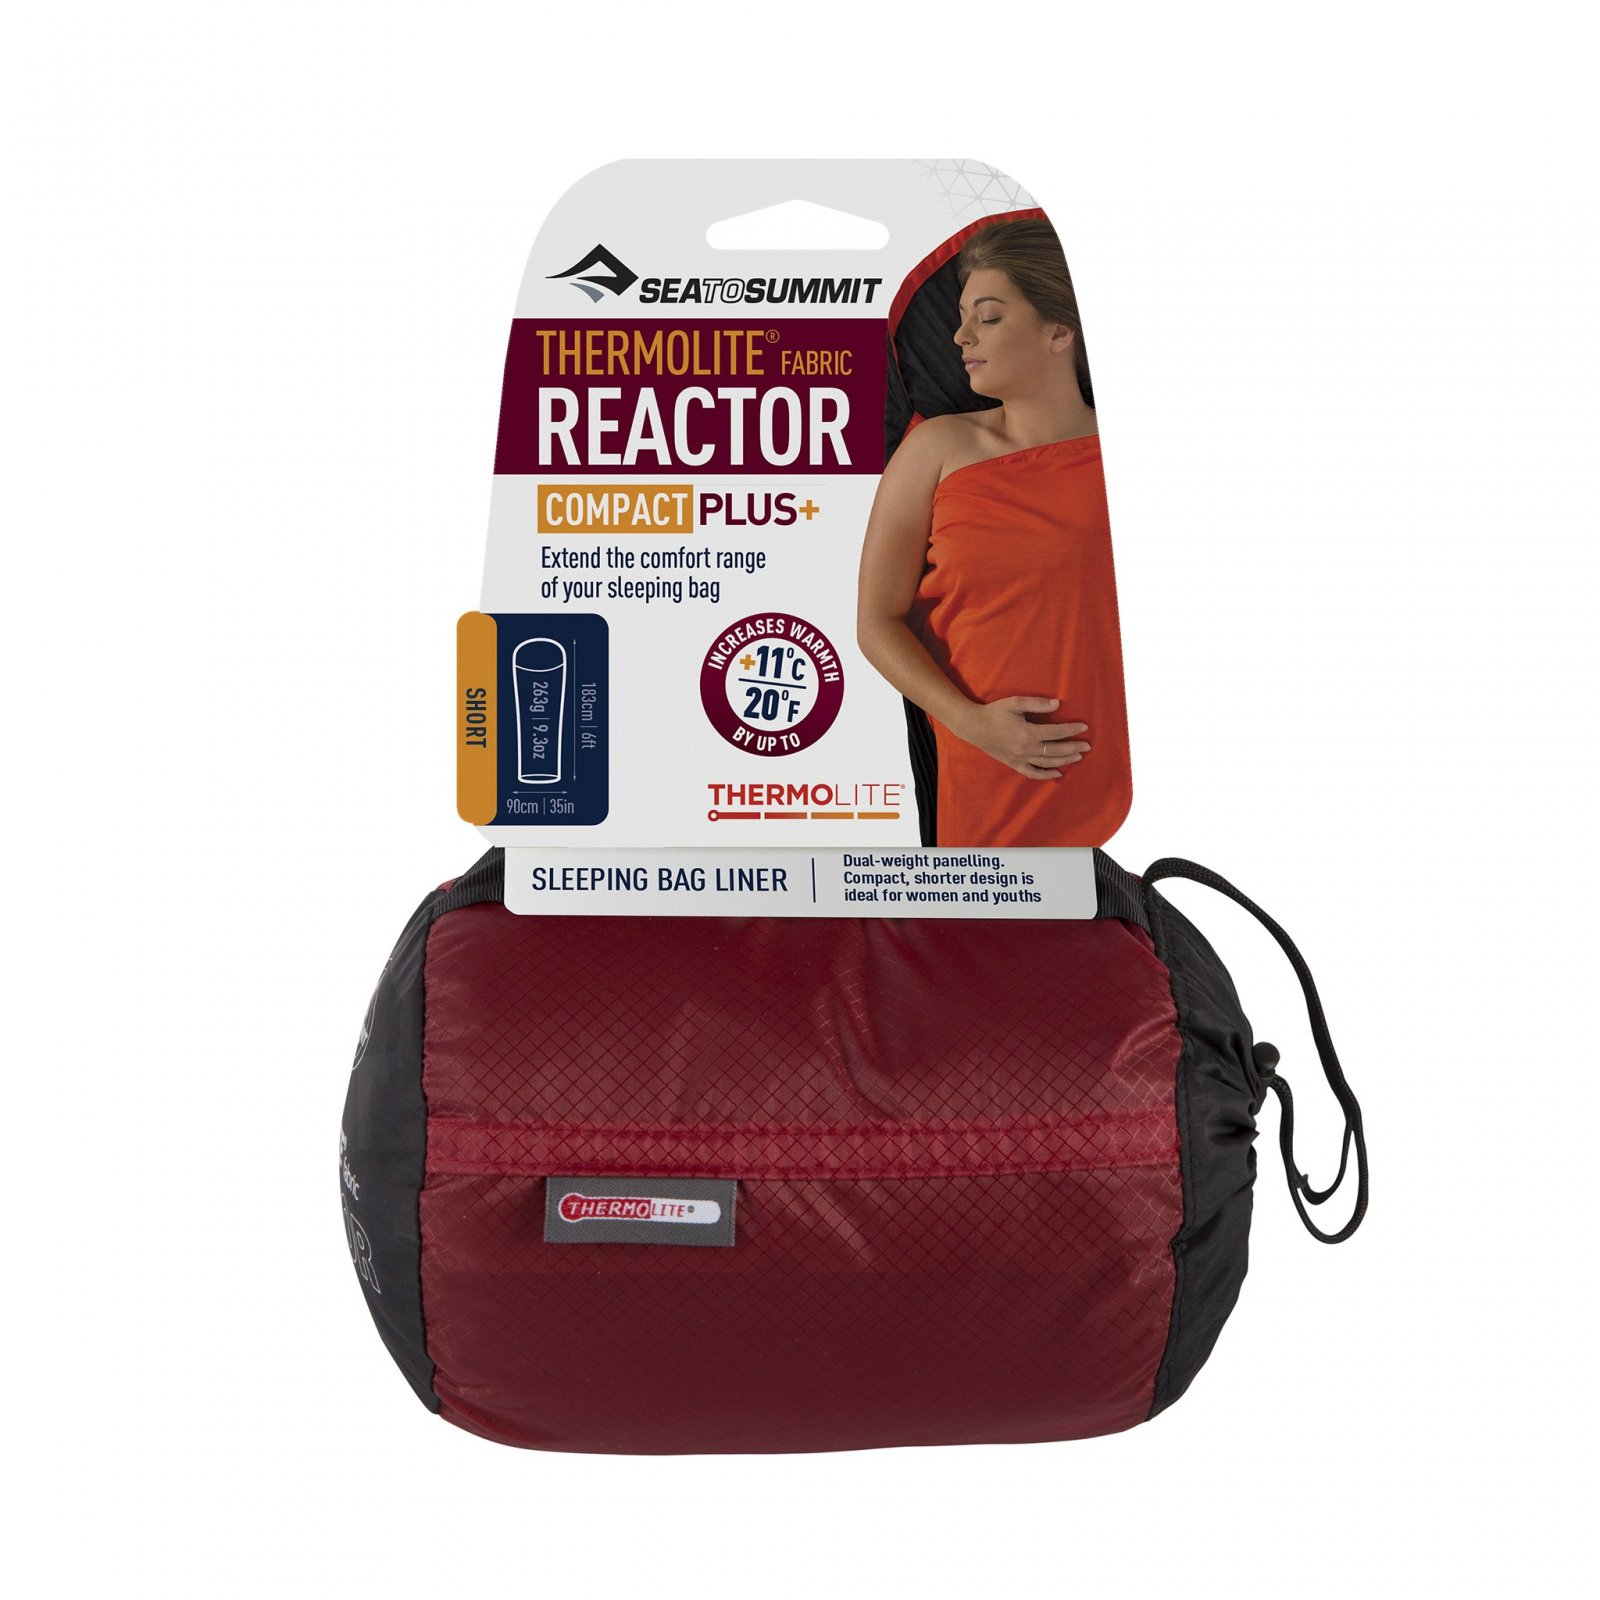 REACTOR PLUS COMPACT- Thermolite Liner